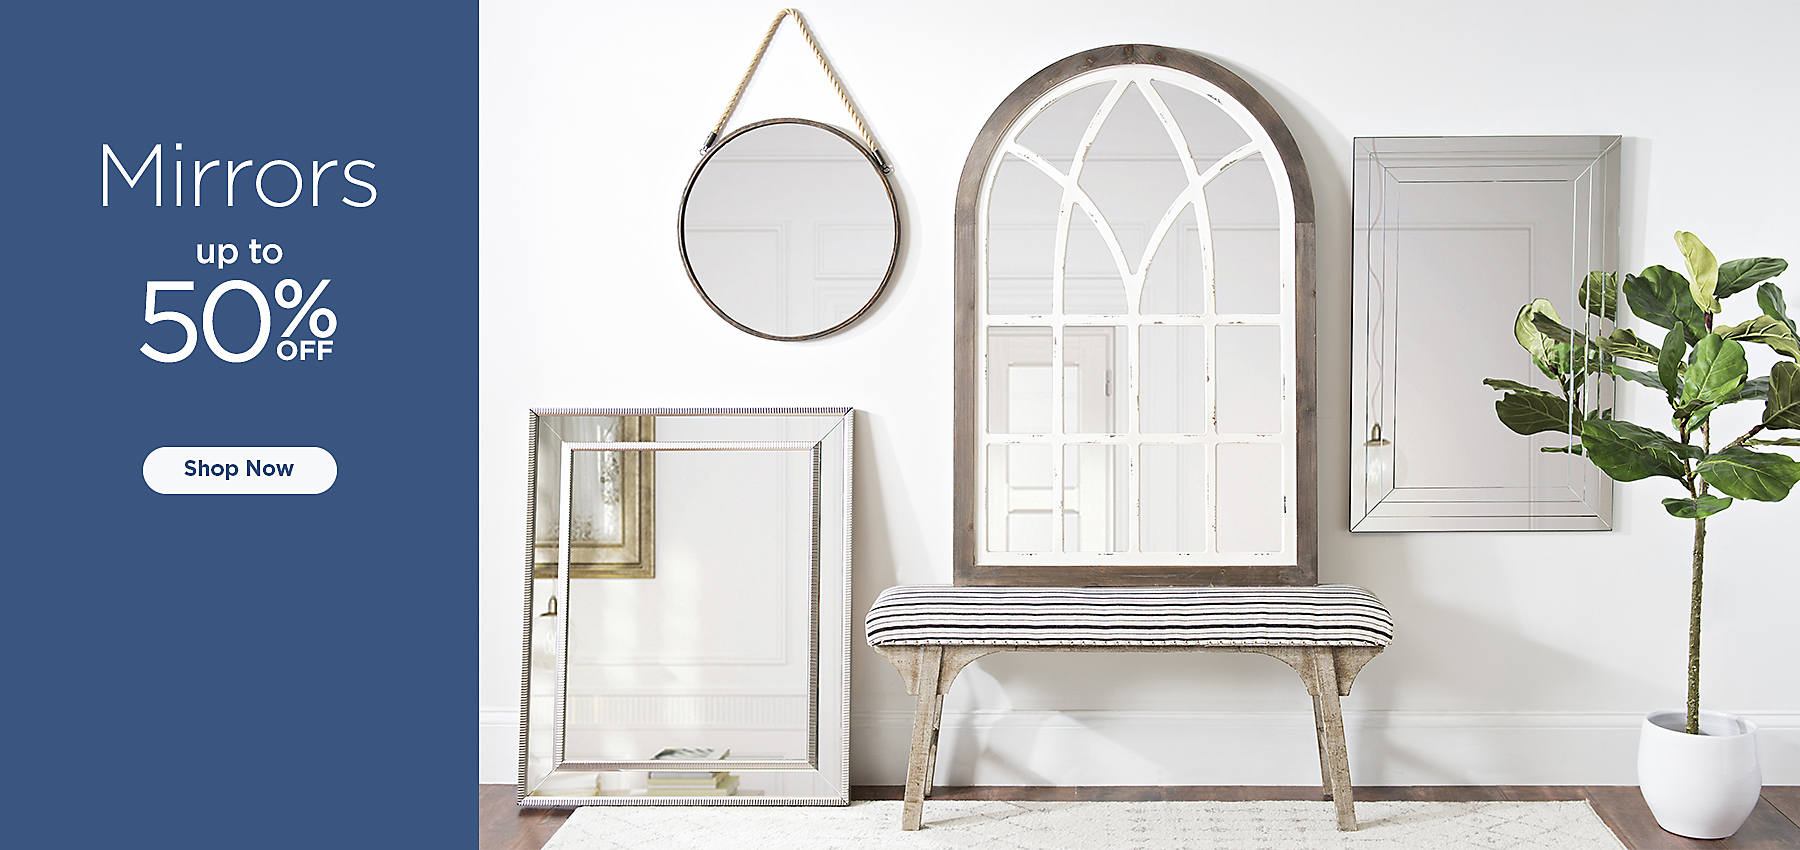 Mirrors up to 50% Off - Shop Now